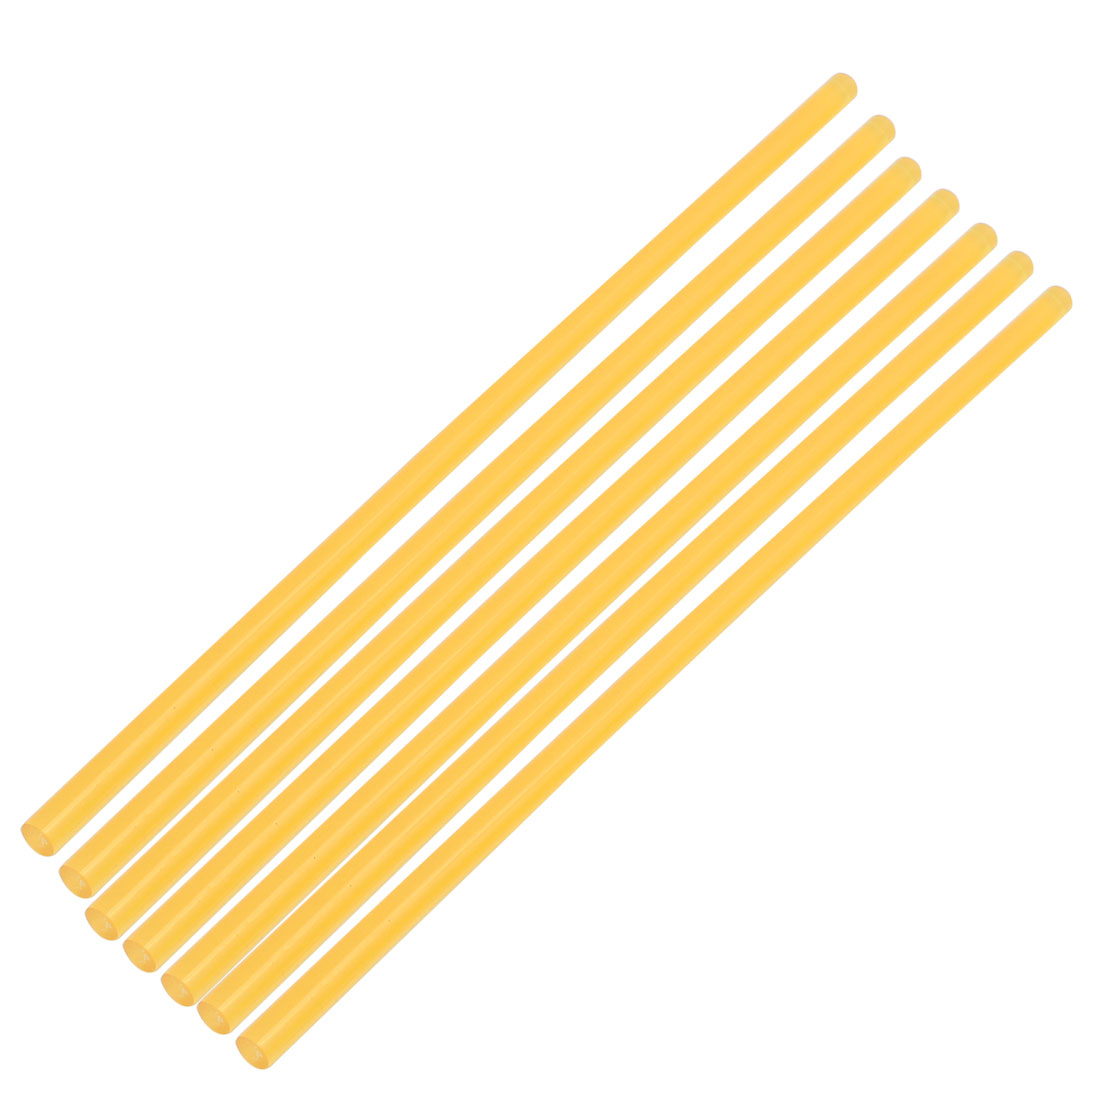 7Pcs 7 x 270mm Hot Melt Glue Adhesive Stick Yellow for Electric Tool Heating